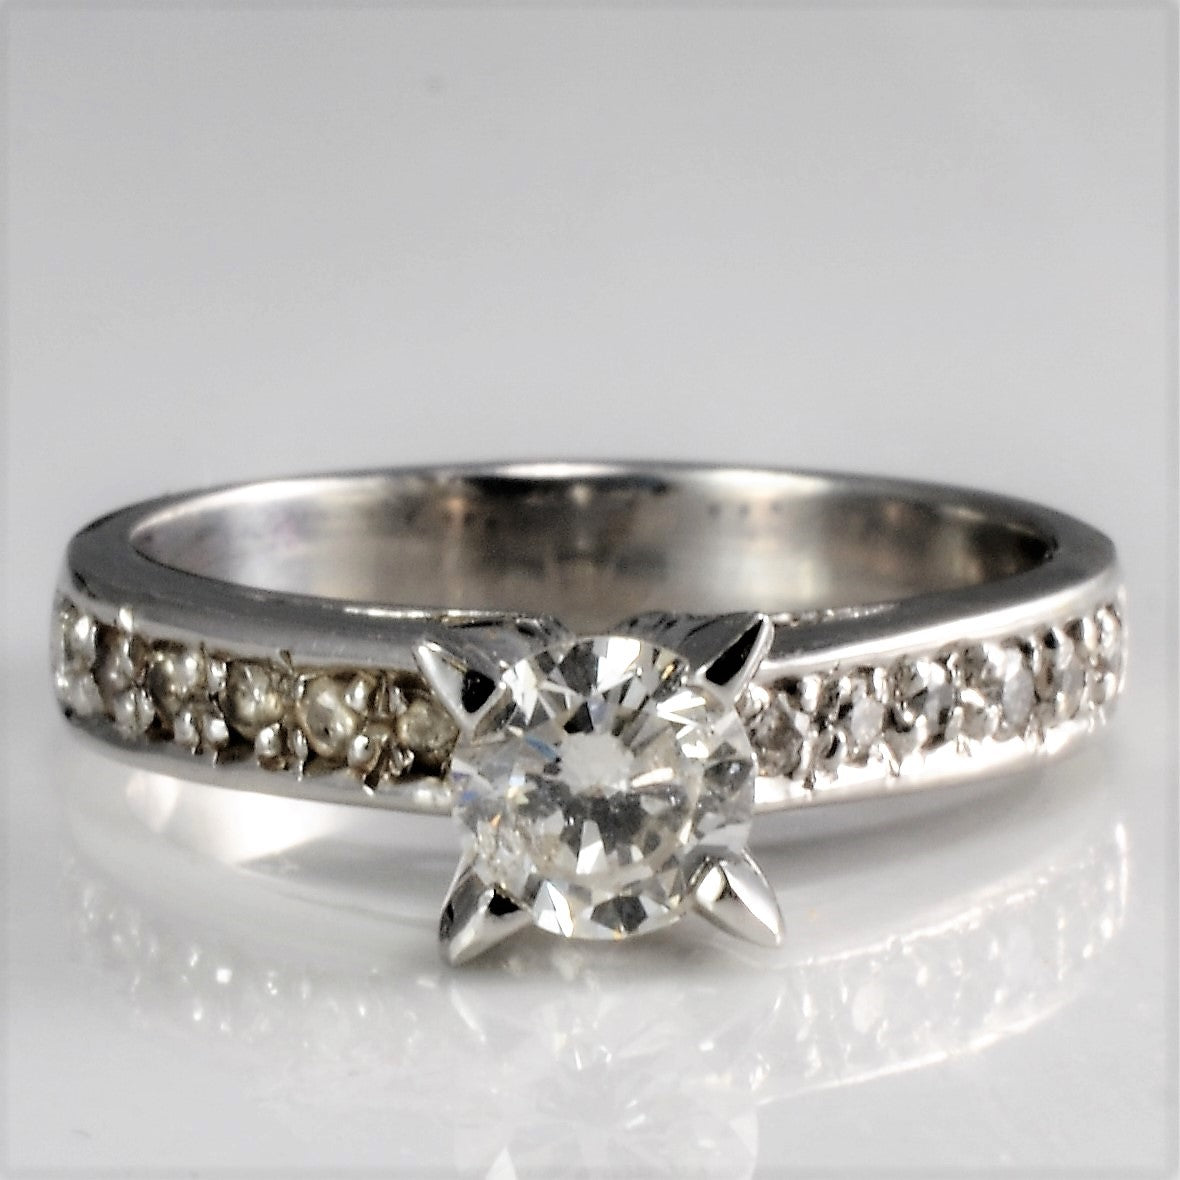 Prong Set Solitaire & Accents Diamond Engagement Ring | 0.48 ctw, SZ 4.5 |